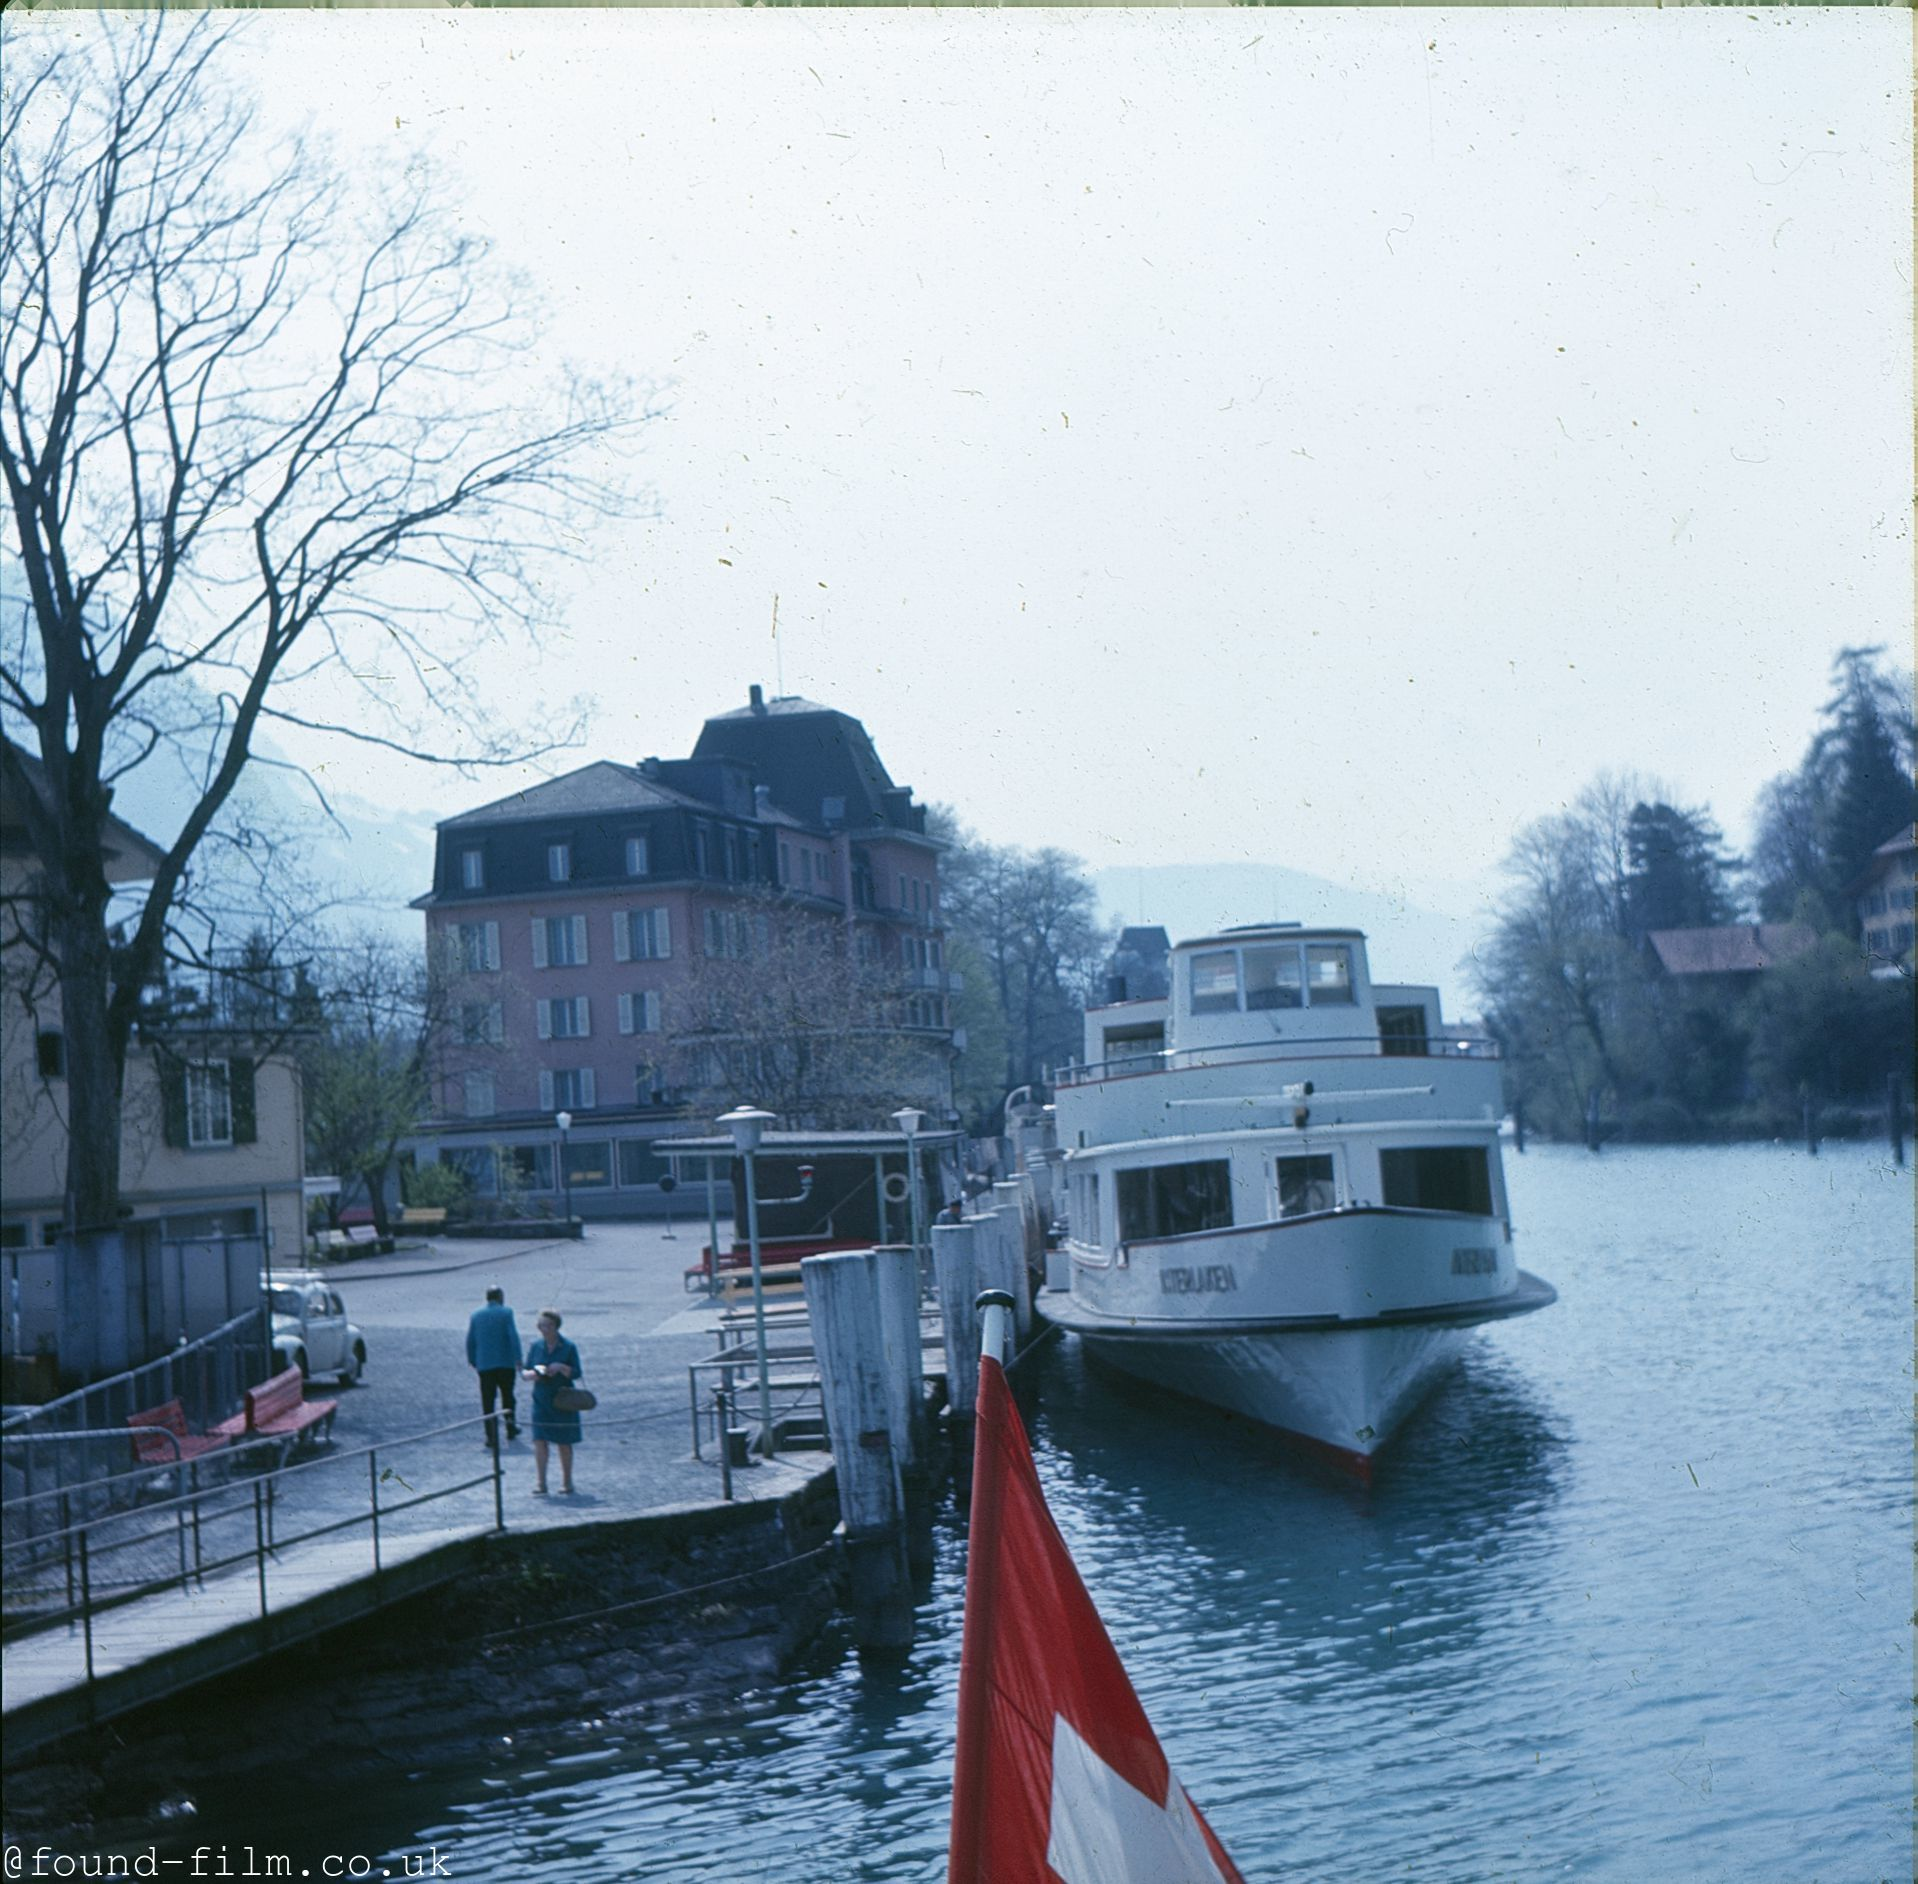 A Motor cruiser moored by the side of a river or canal